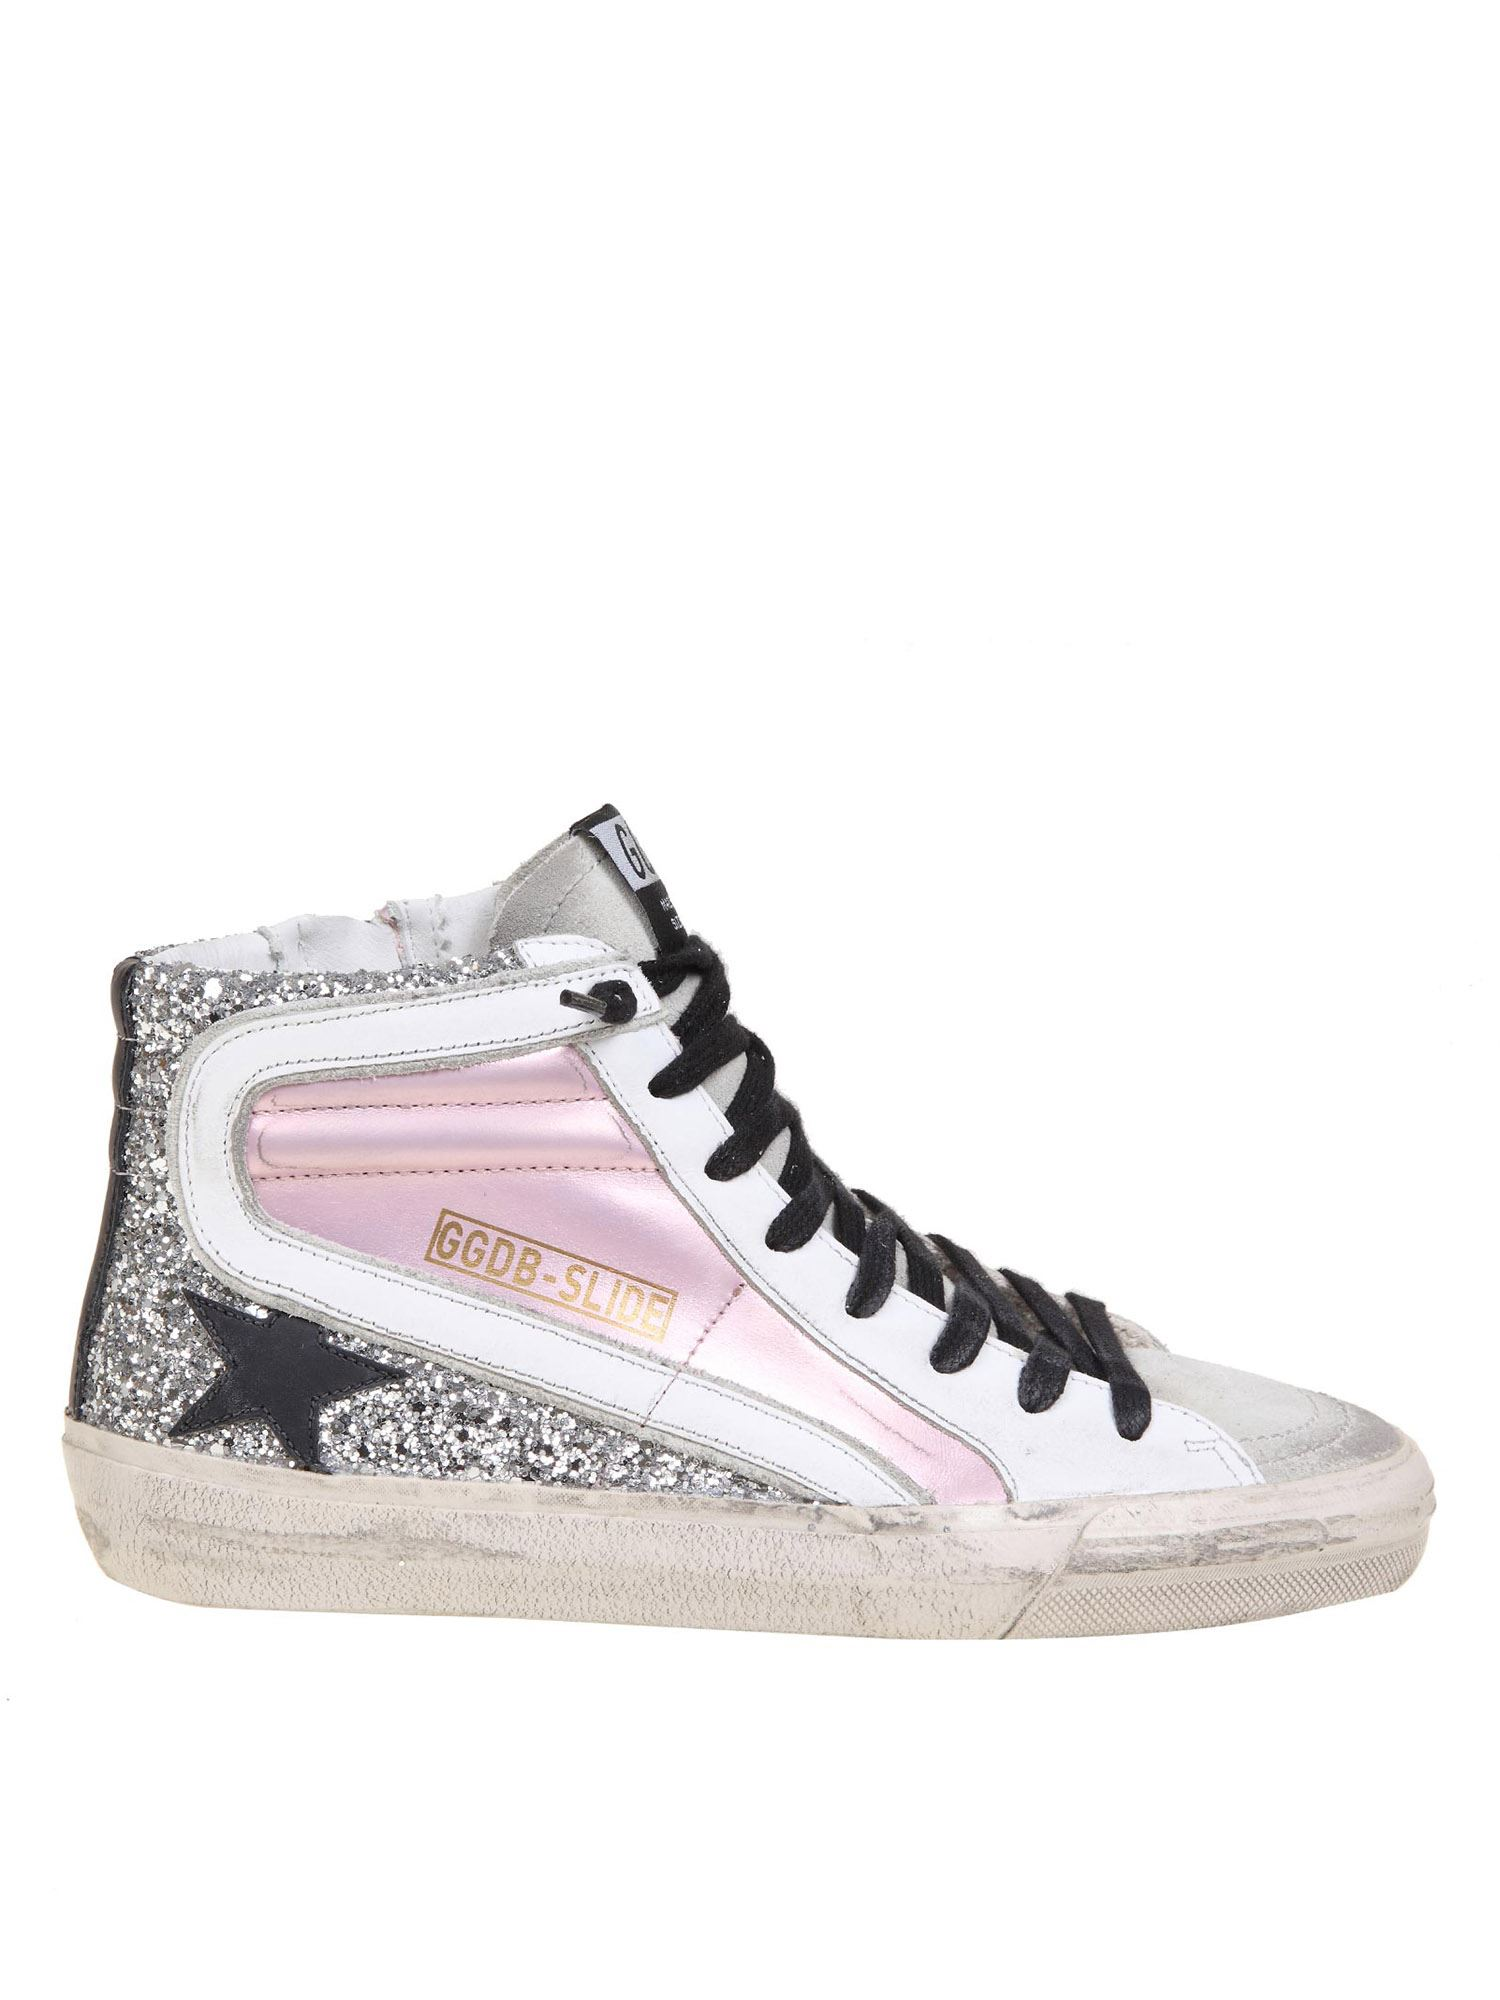 Golden Goose SLIDE SNEAKERS IN GLITTER AND PINK